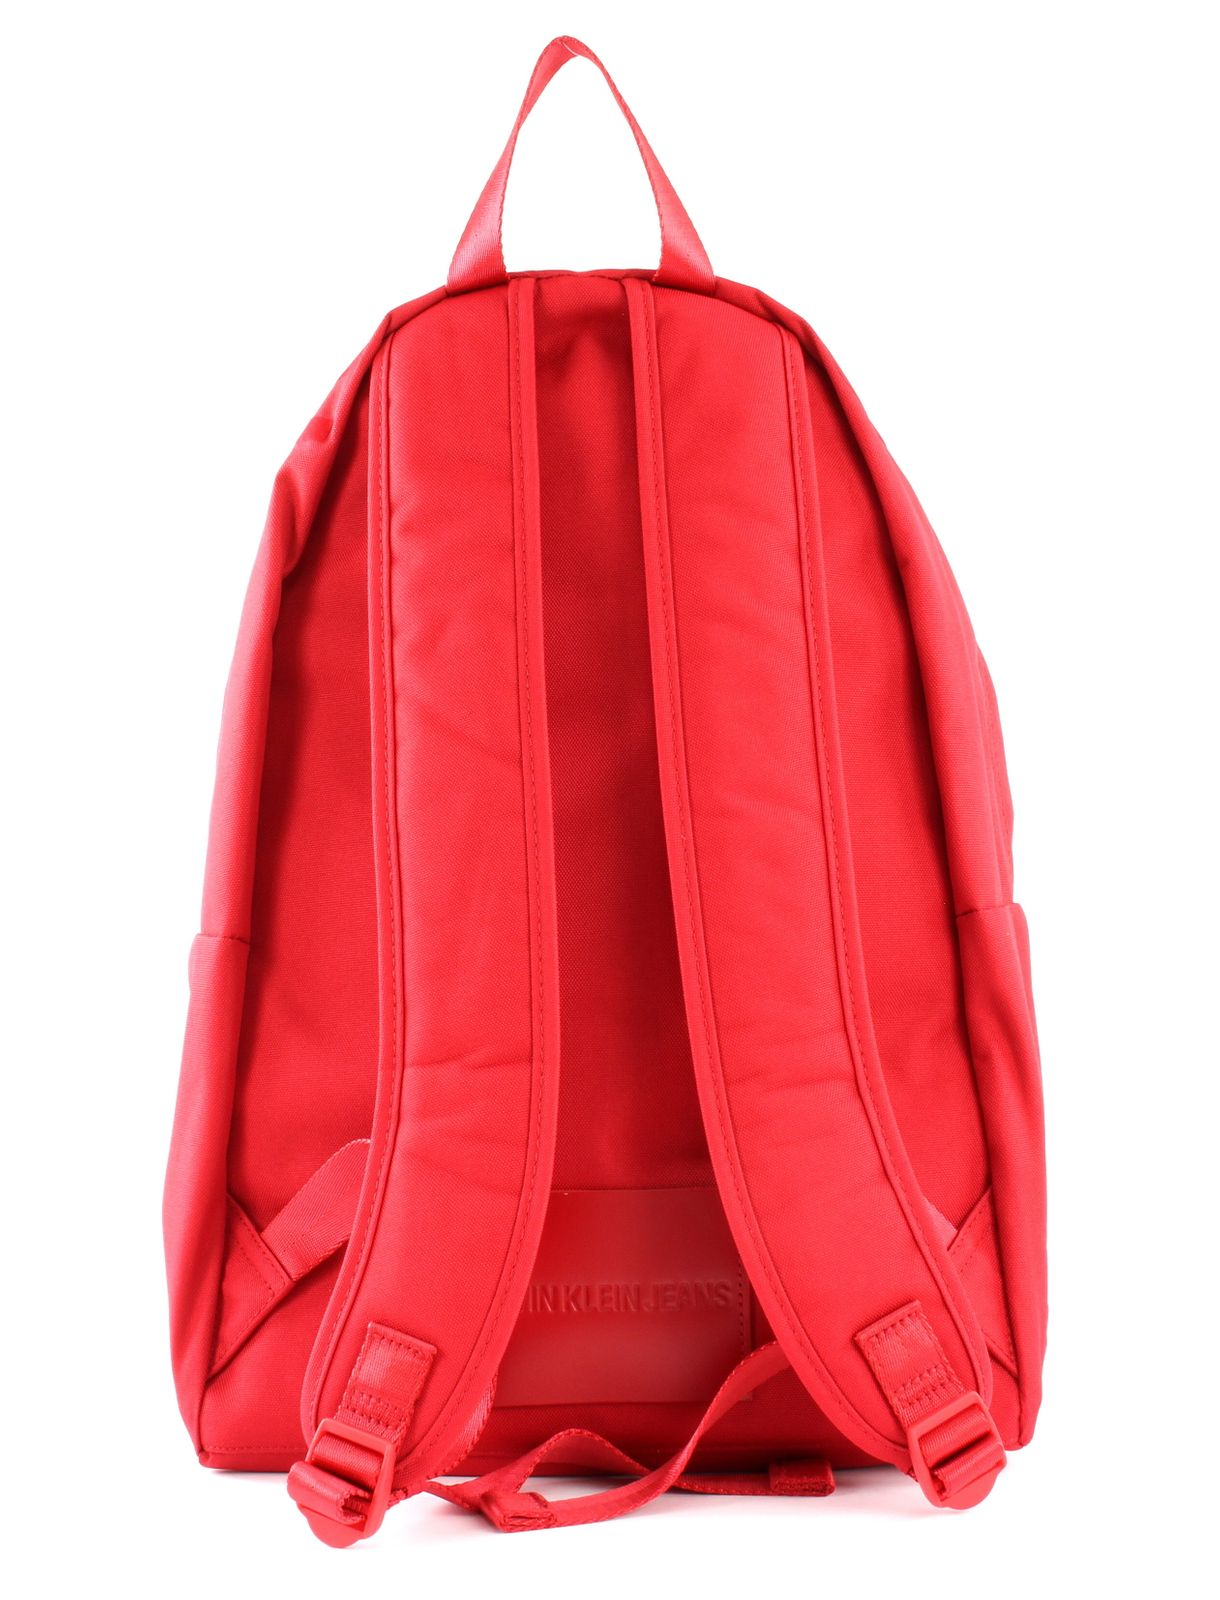 6d3daa42f ... CloseCalvin Klein Sports Essential Campus Backpack Racing Red / 89,90  €*Tap To CloseOnly possible if you pay by Paypal, Amazon Payments, Credit  Card, ...